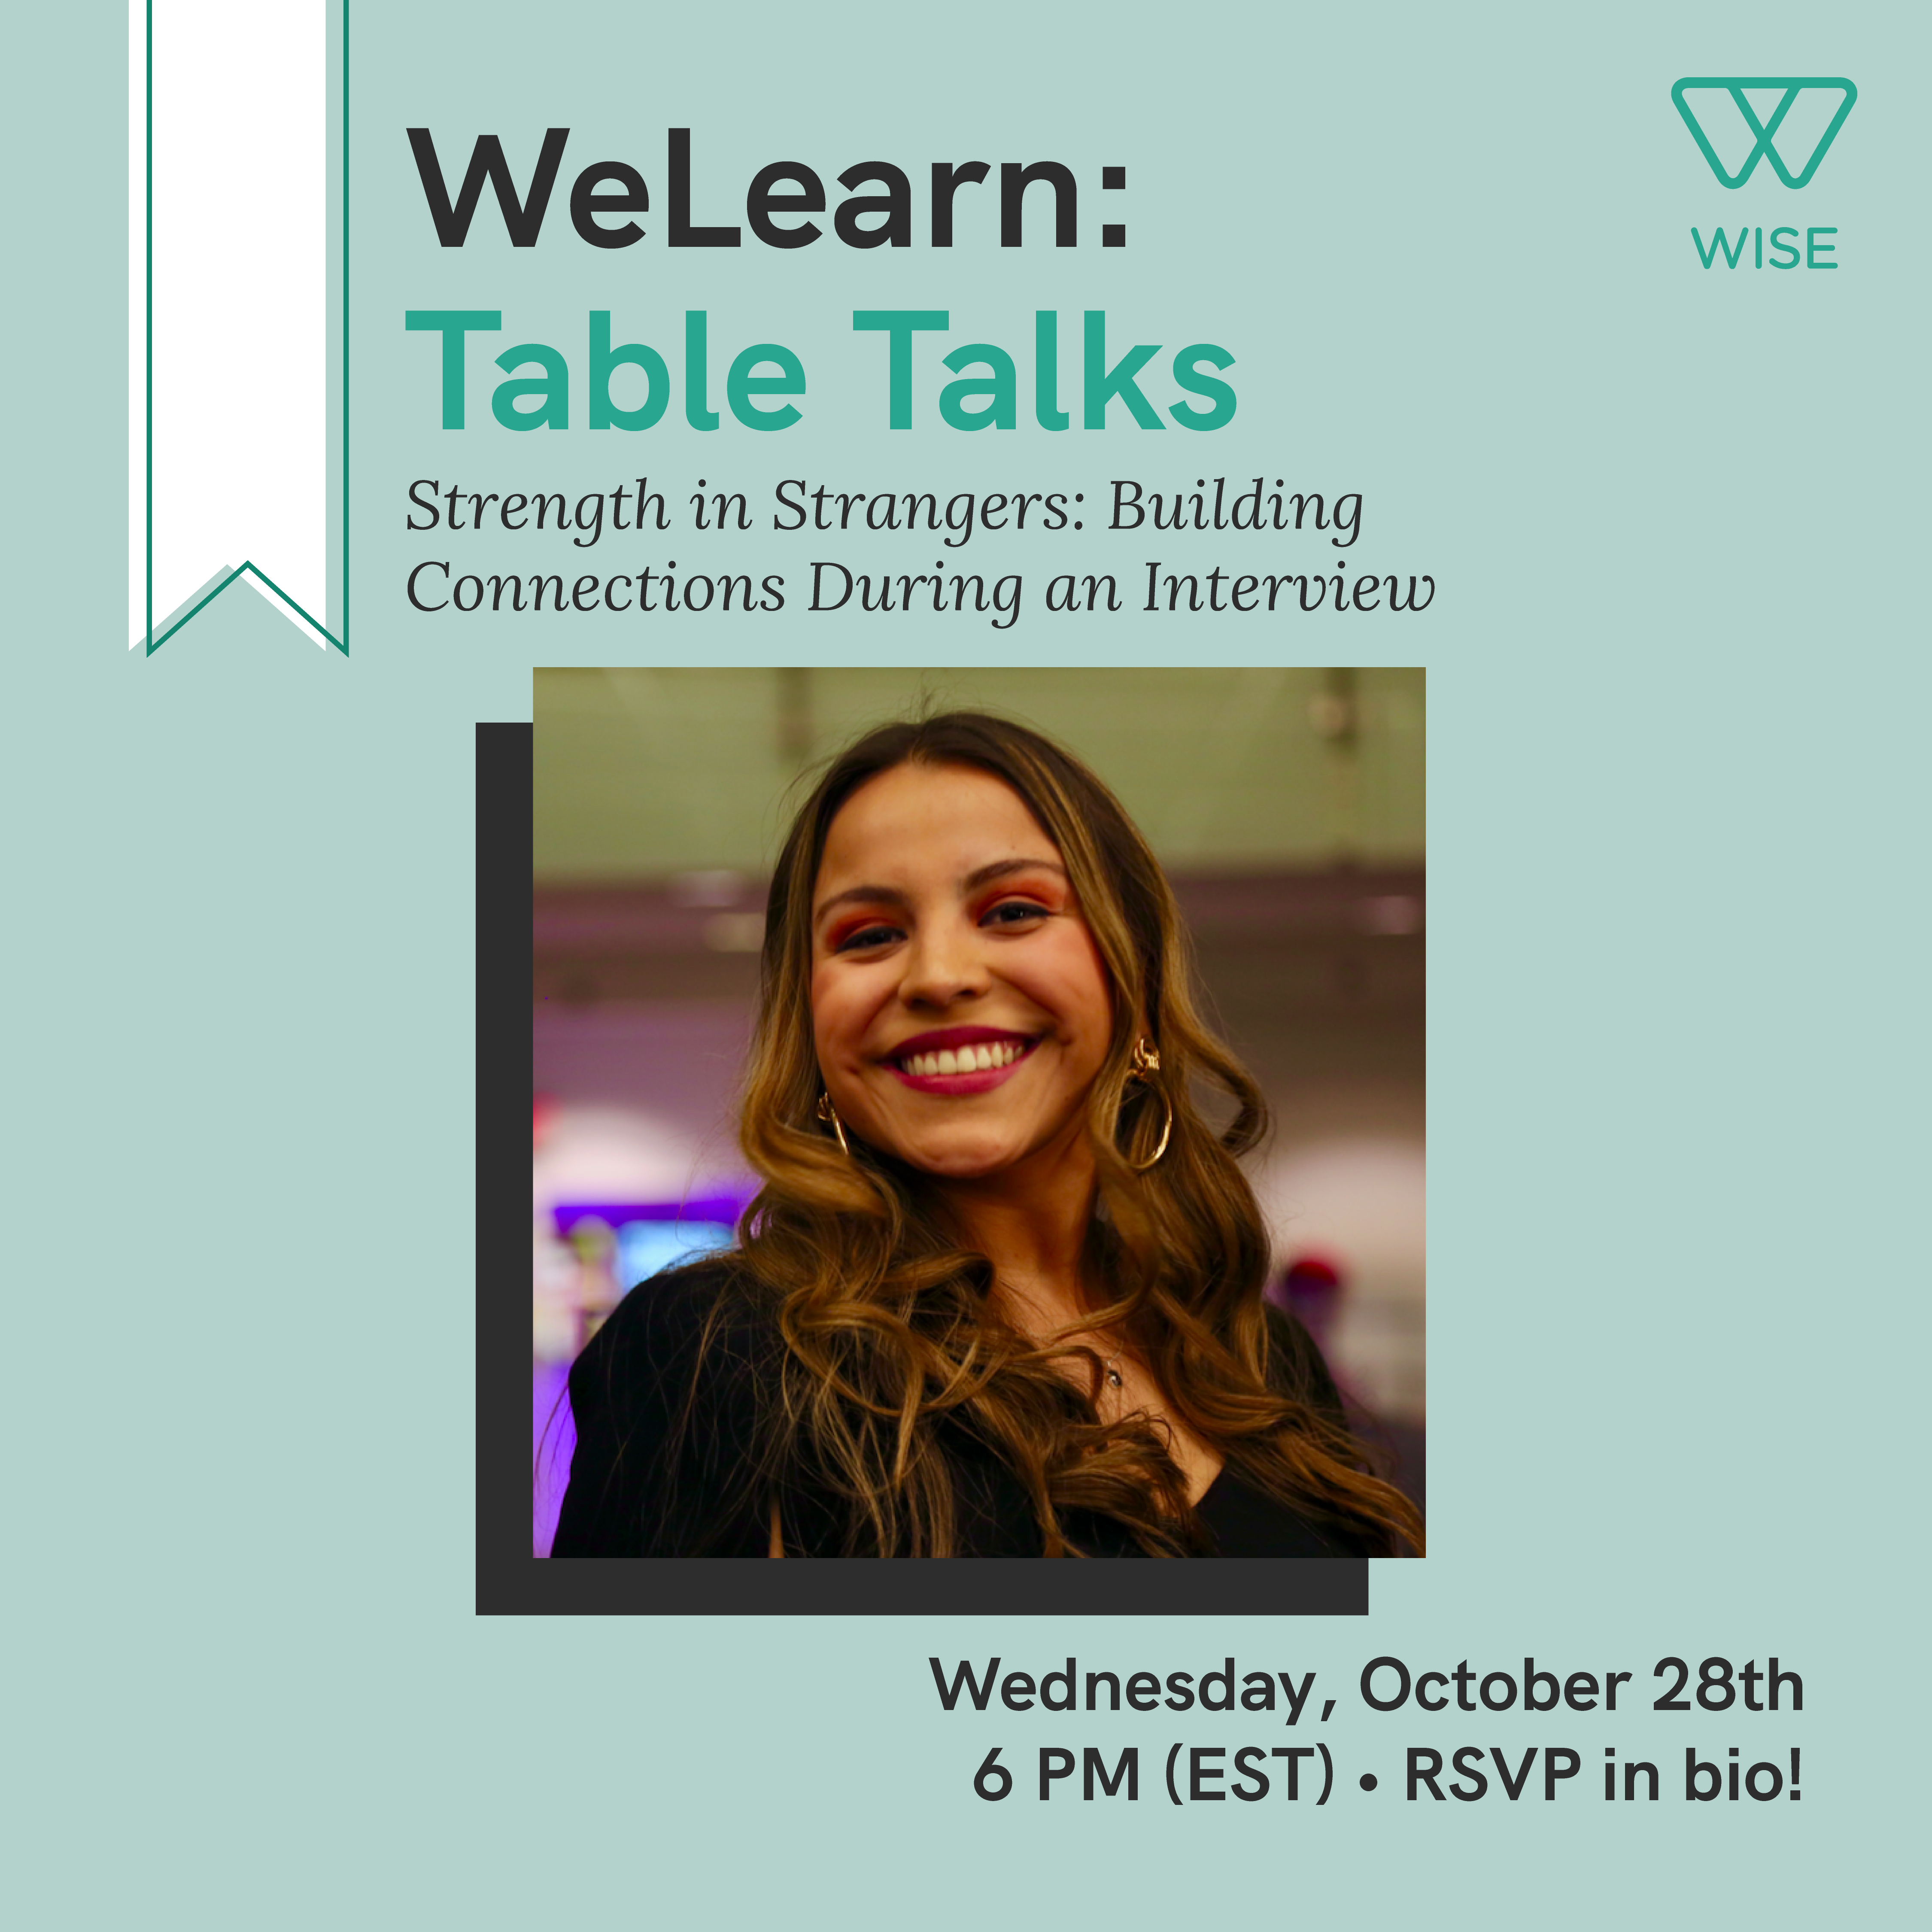 """Event flyer for """"WeLearn Table Talks: Strength in Strangers: Building Connections During an Interview""""."""